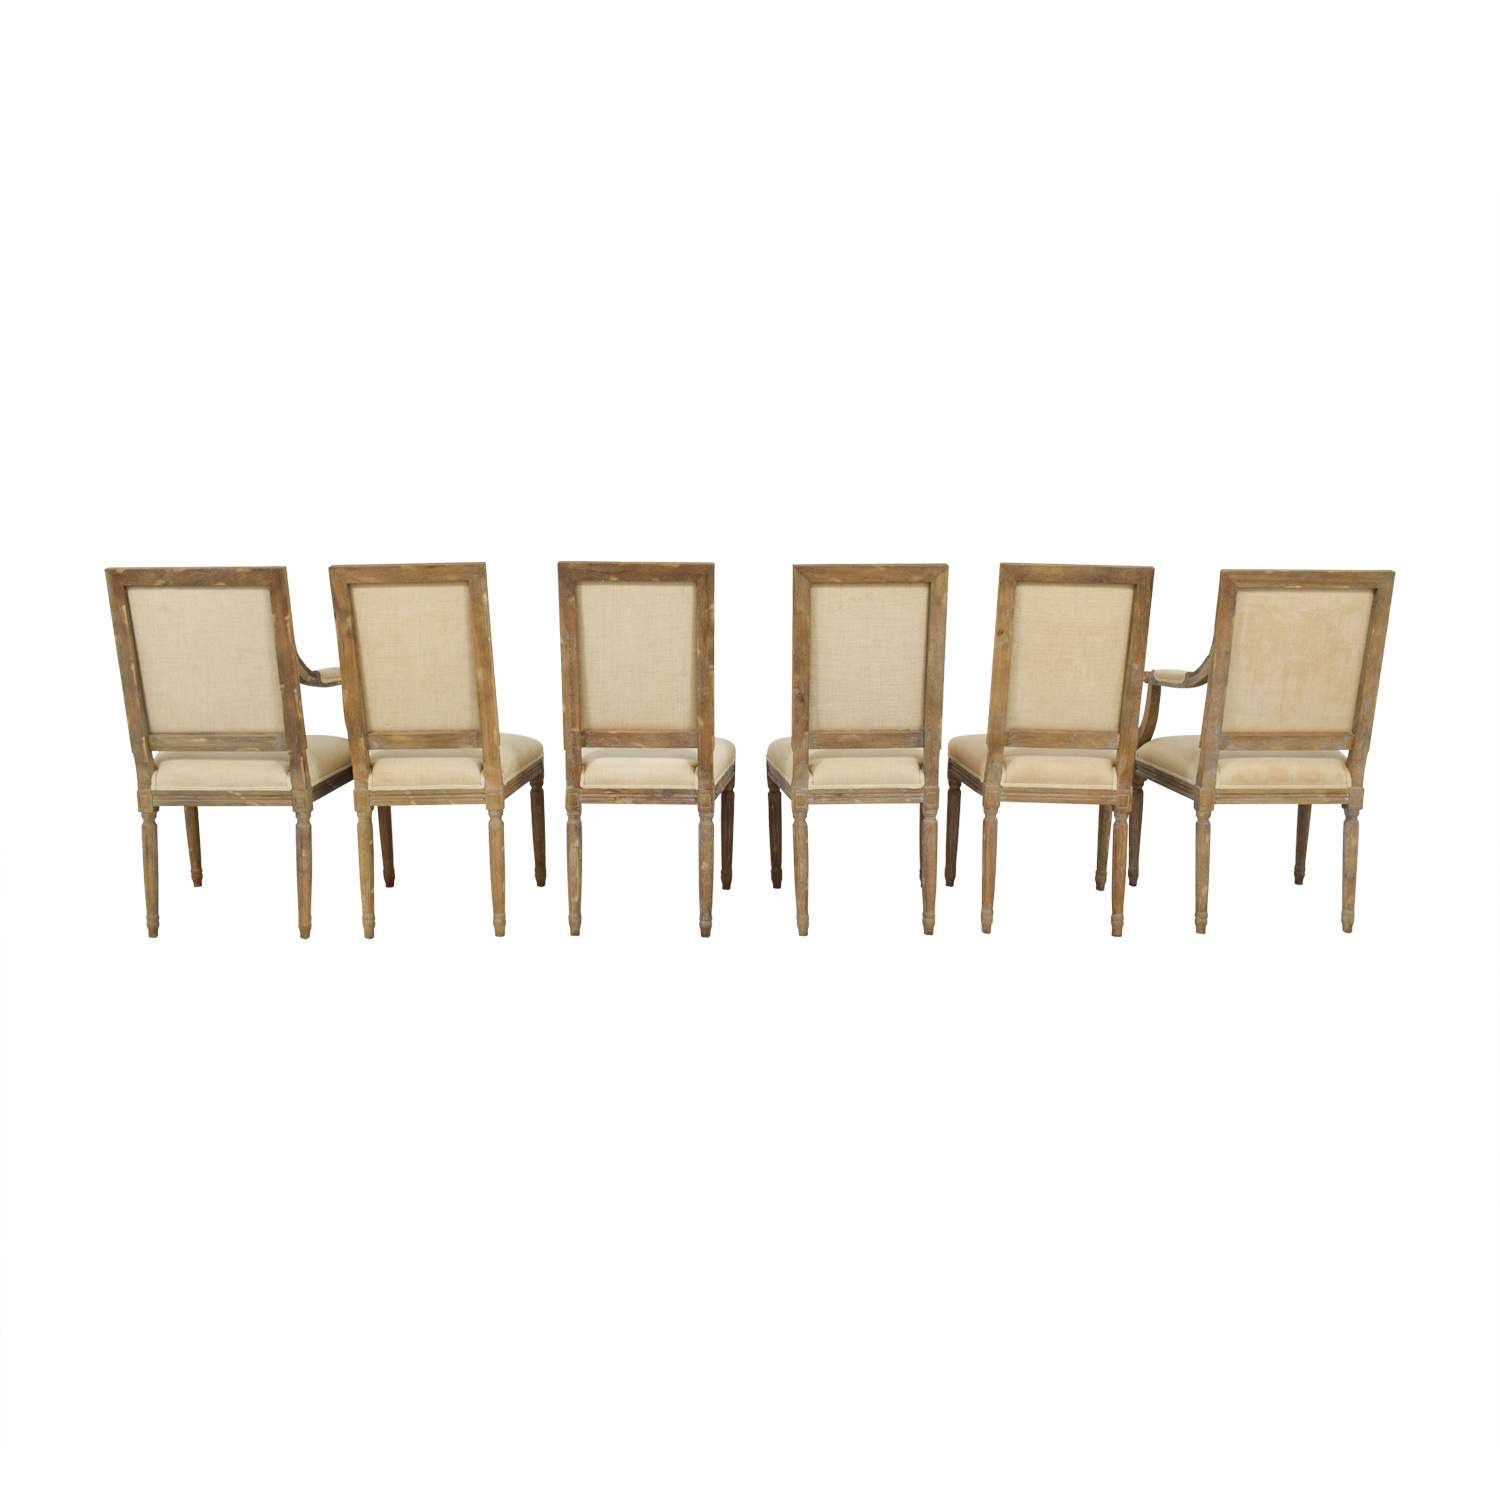 Restoration Hardware Restoration Hardware Vintage Square Chairs